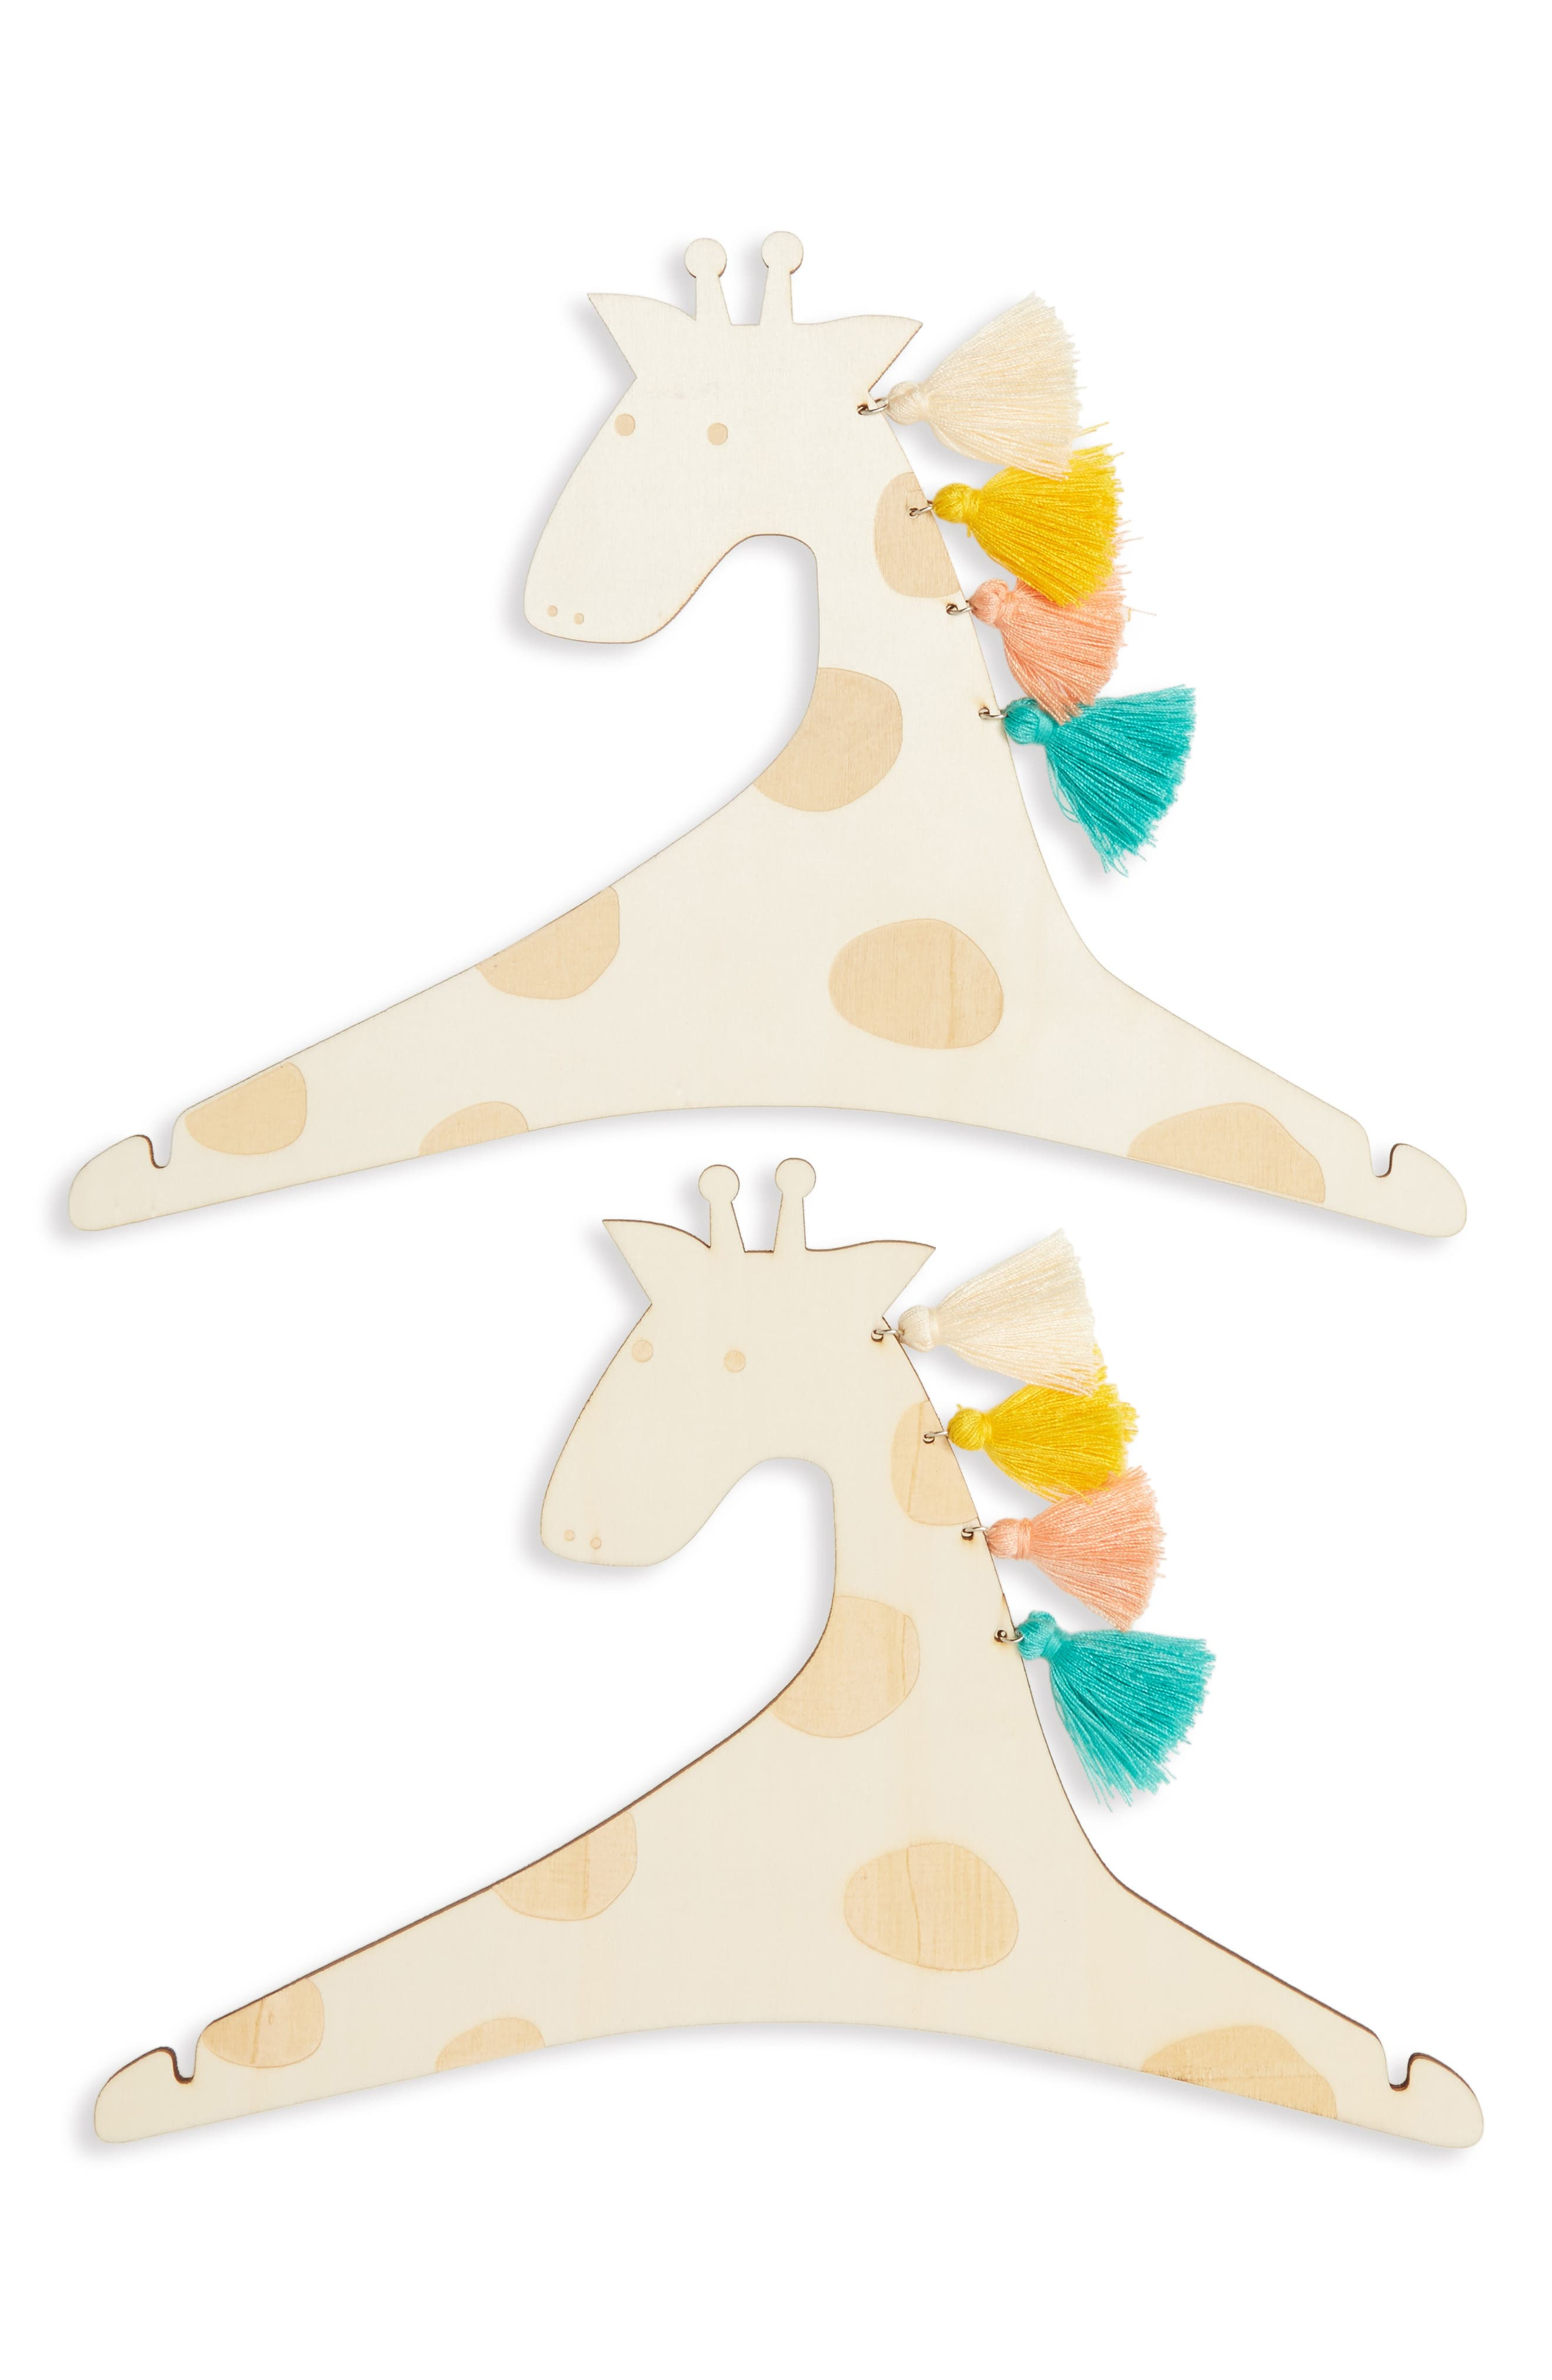 Main Image - Meri Meri Set of 2 Giraffe Hangers (Kids)